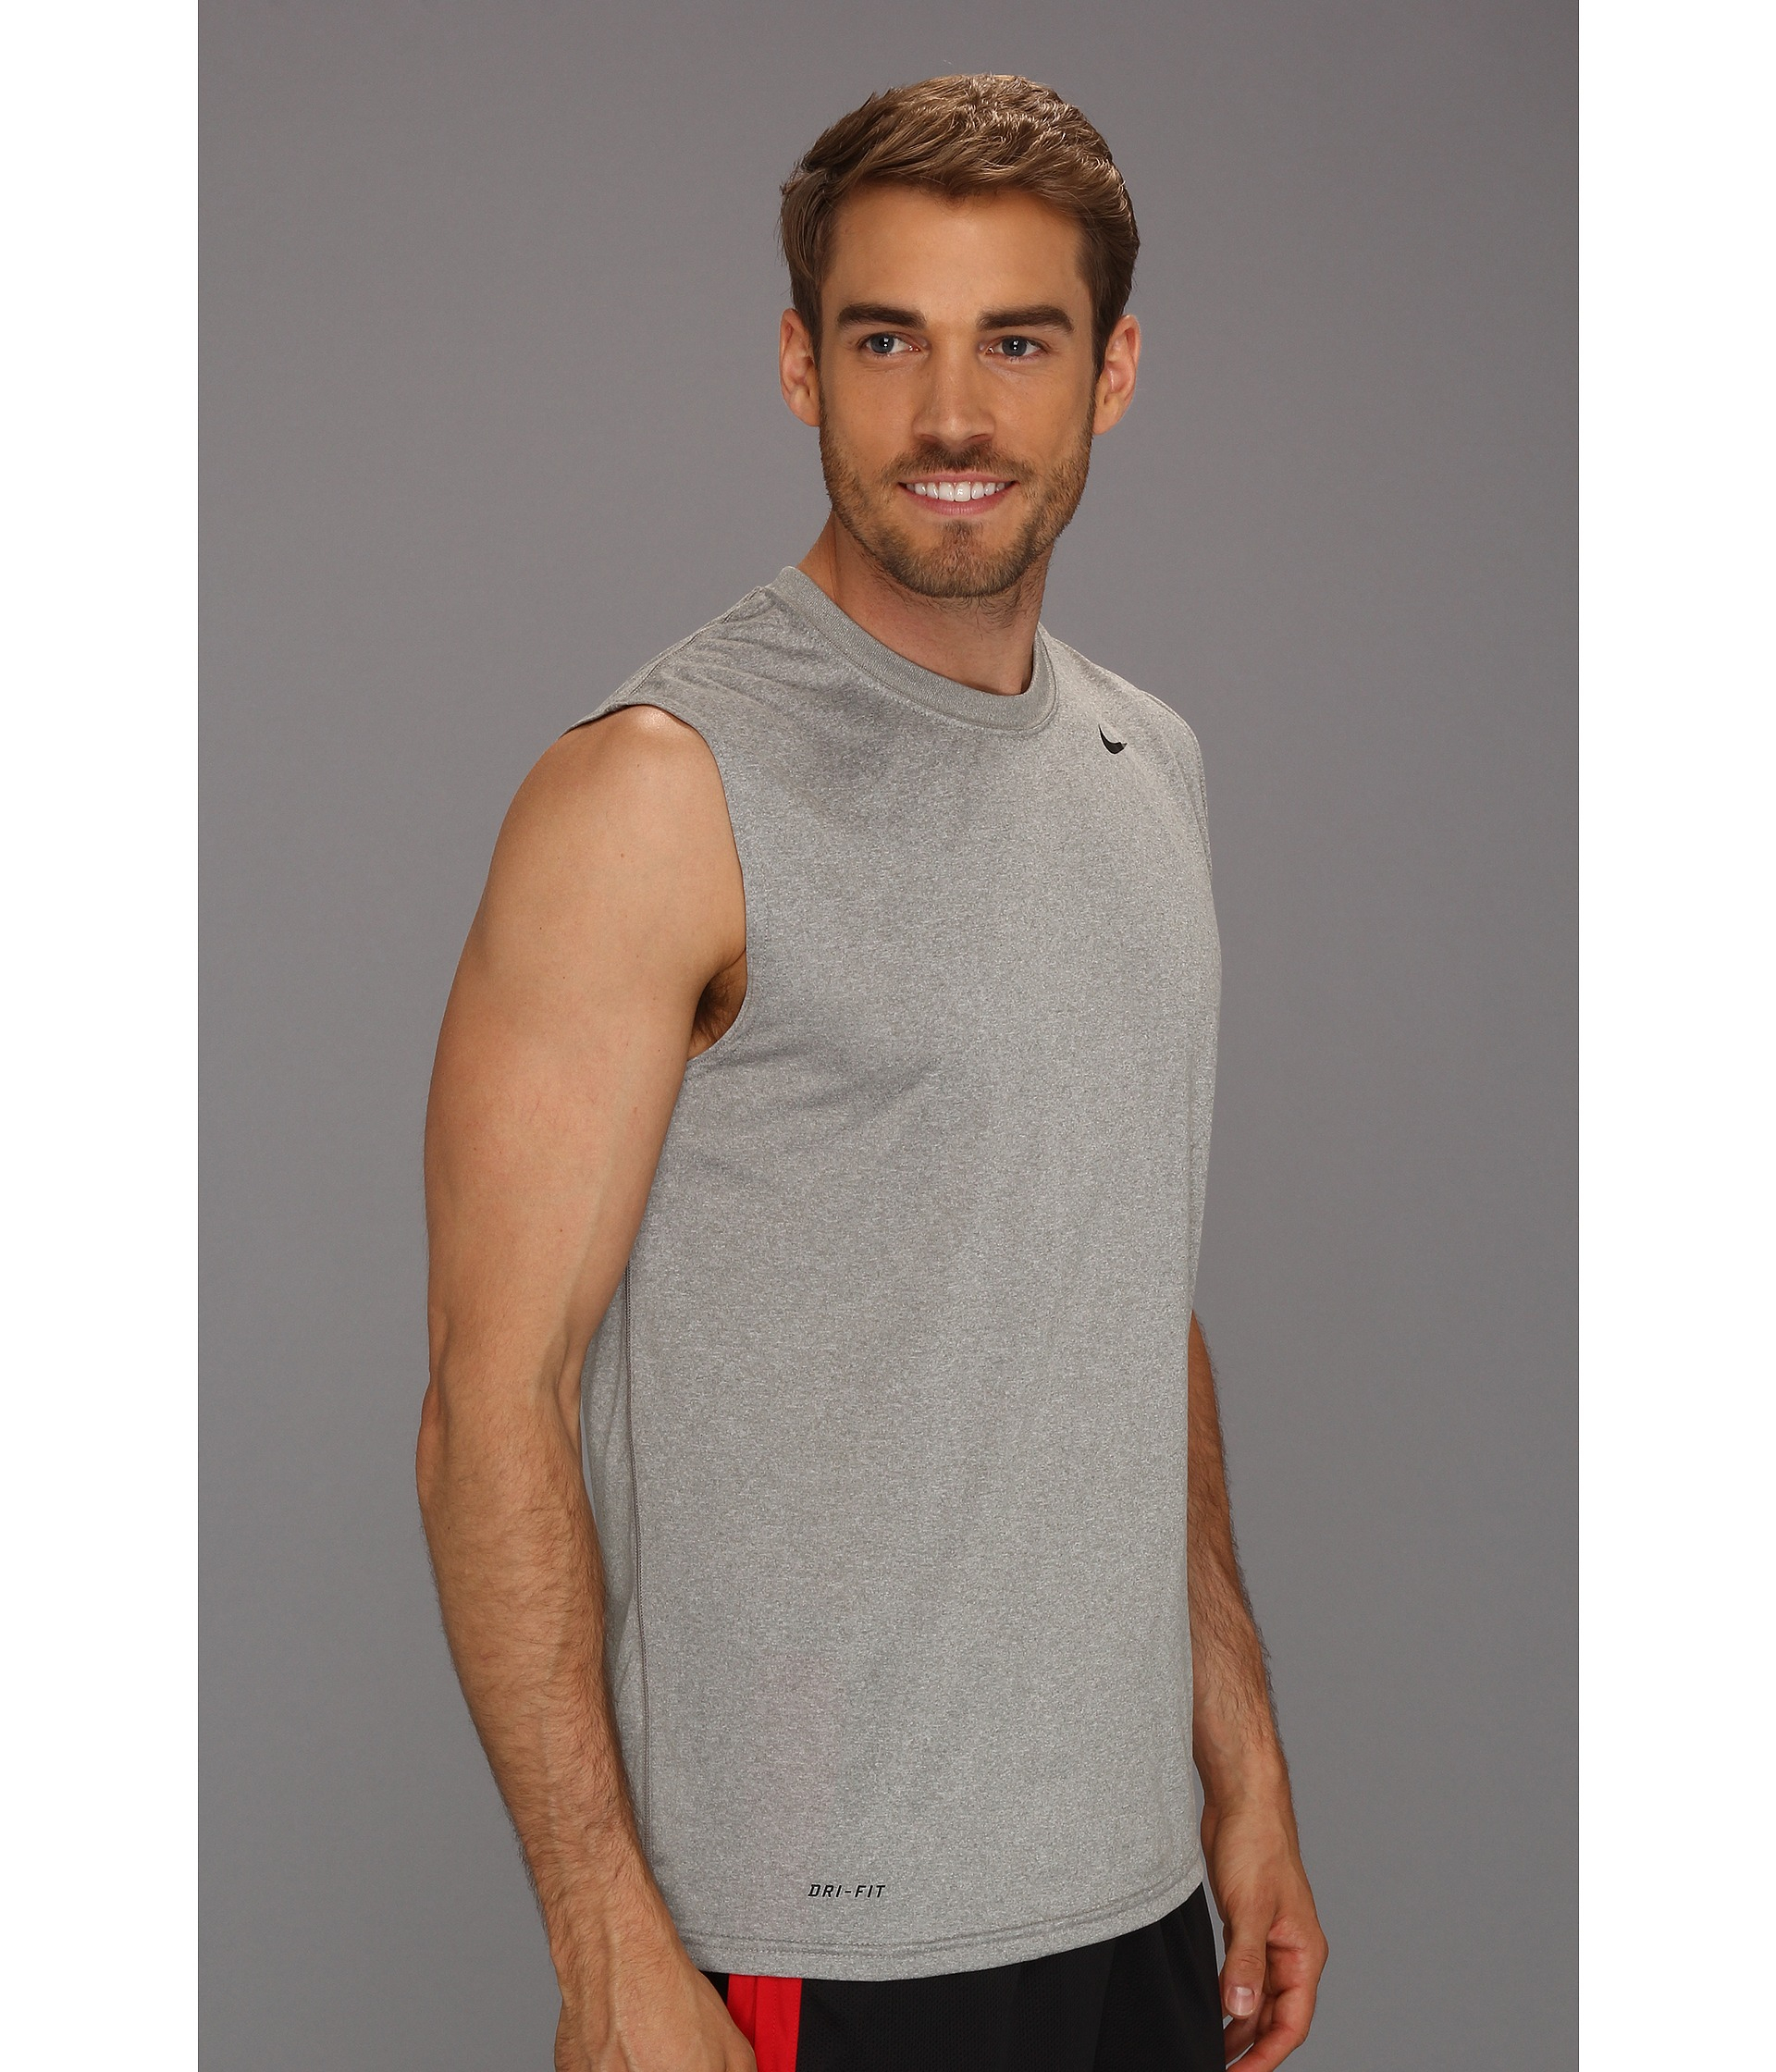 Nike dri fit legend sleeveless training shirt in gray for for Dri fit dress shirts